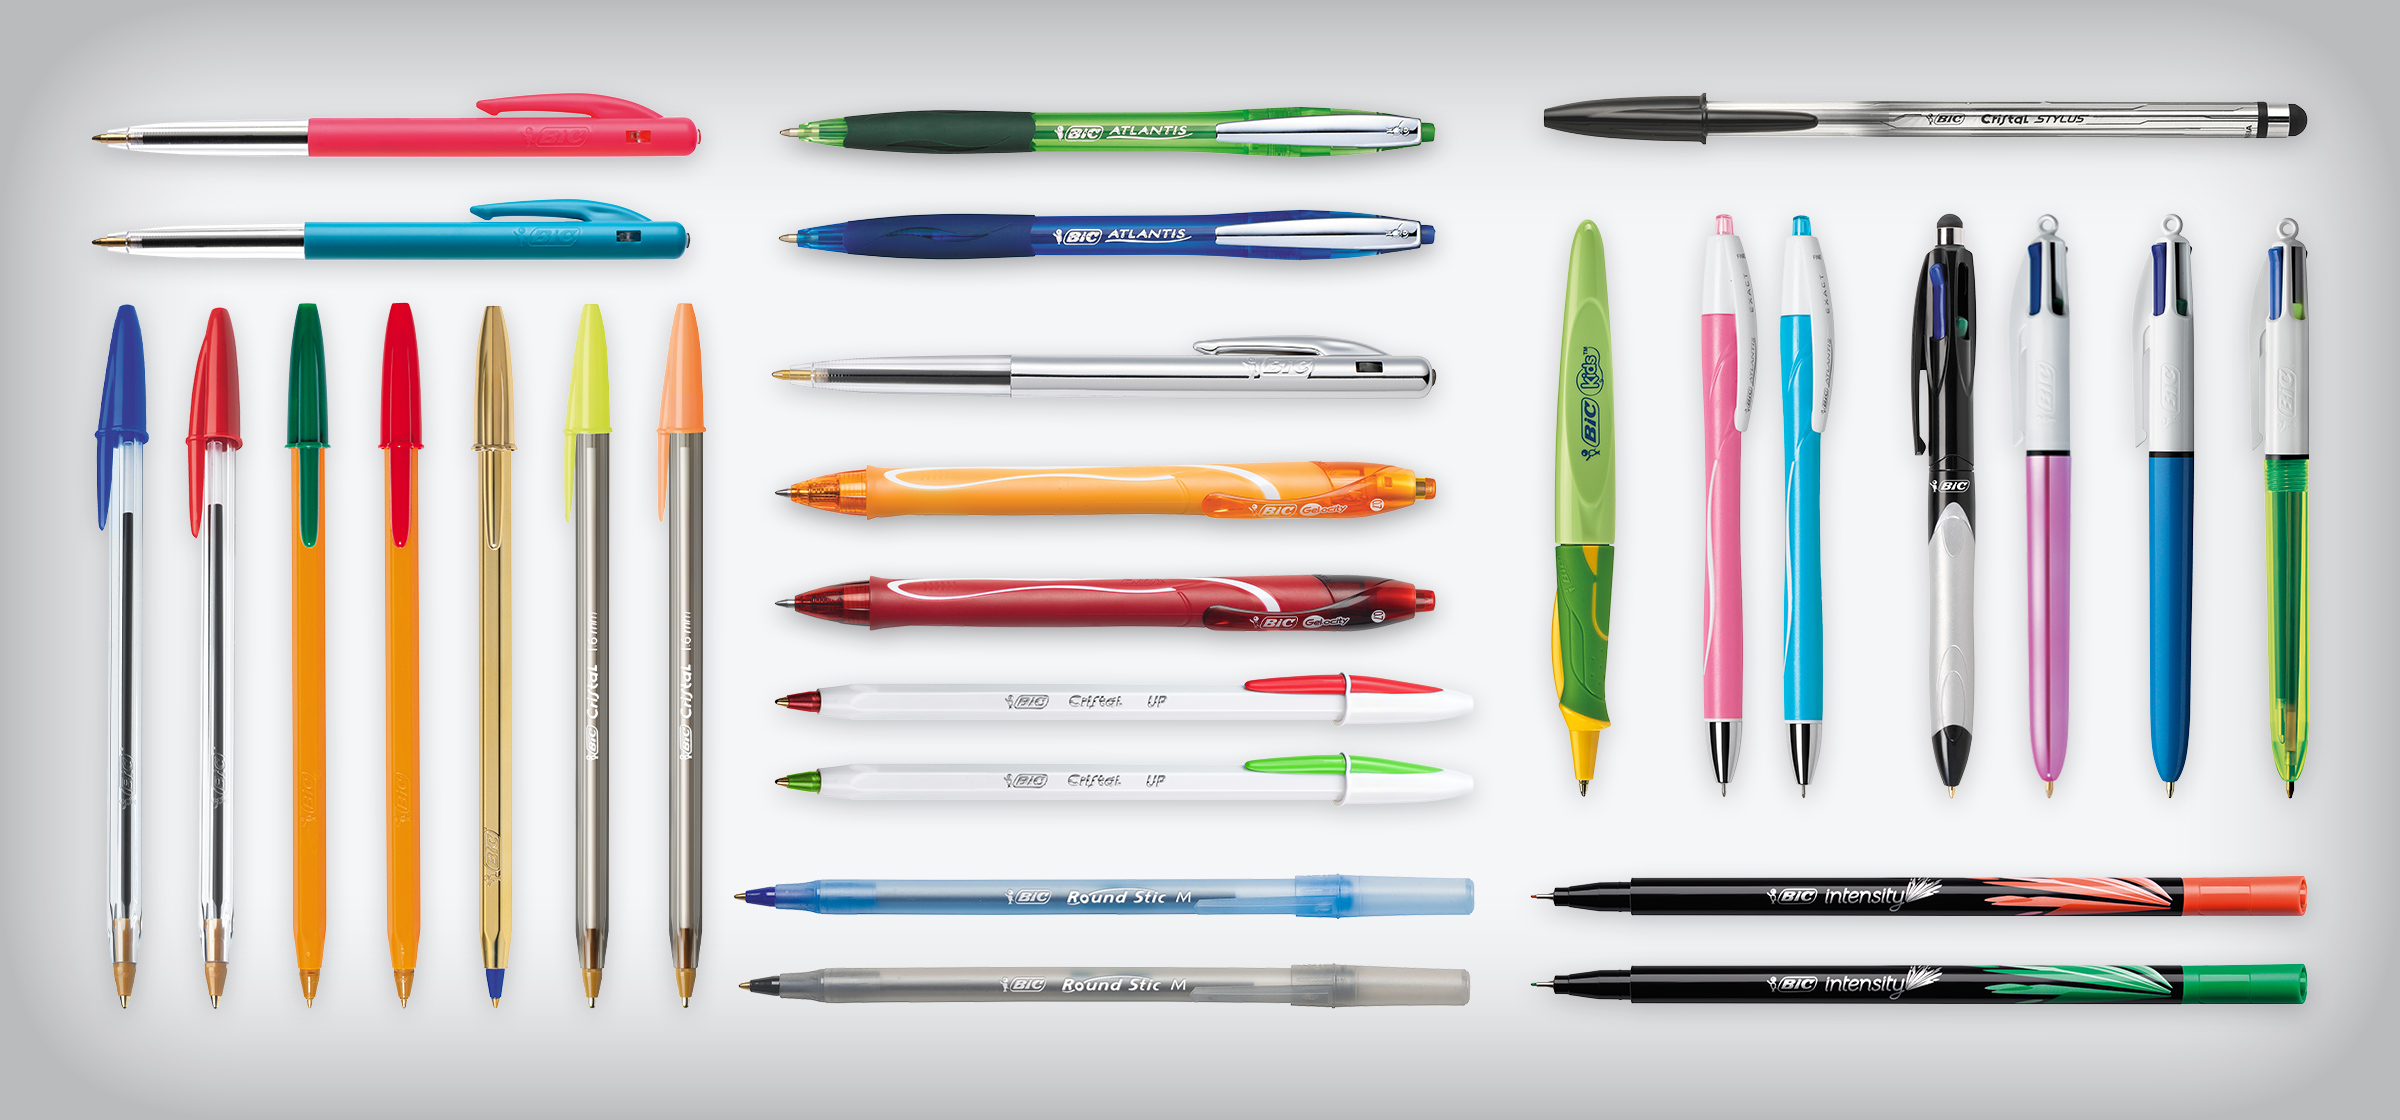 BIC Stationery appoints 10 feet tall as strategic and creative agency following a competitive pitch